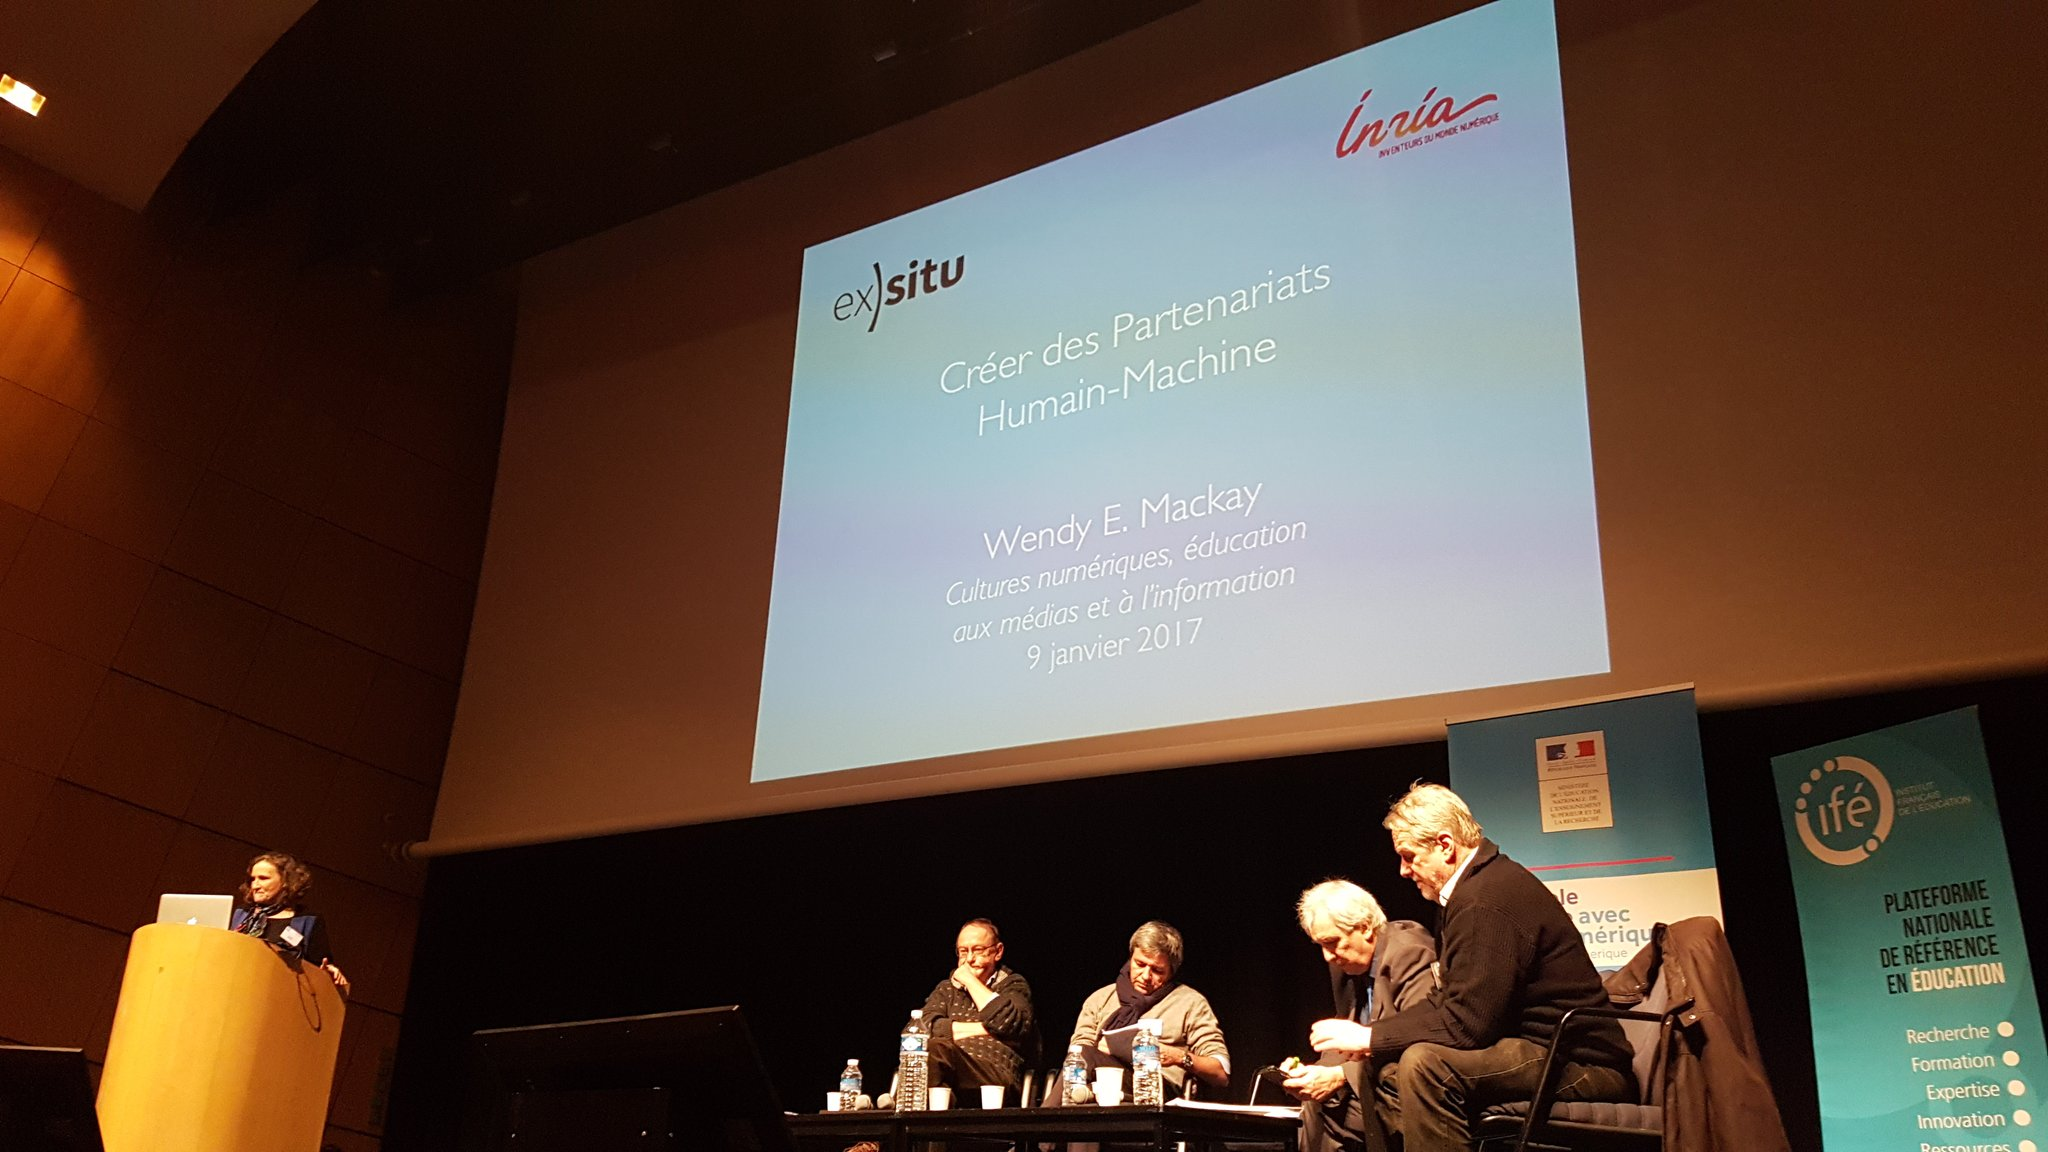 Intervention de Wendy Mackay #emiconf2017 : l'informatique est la science de l'information https://t.co/6gD7DYGZCO